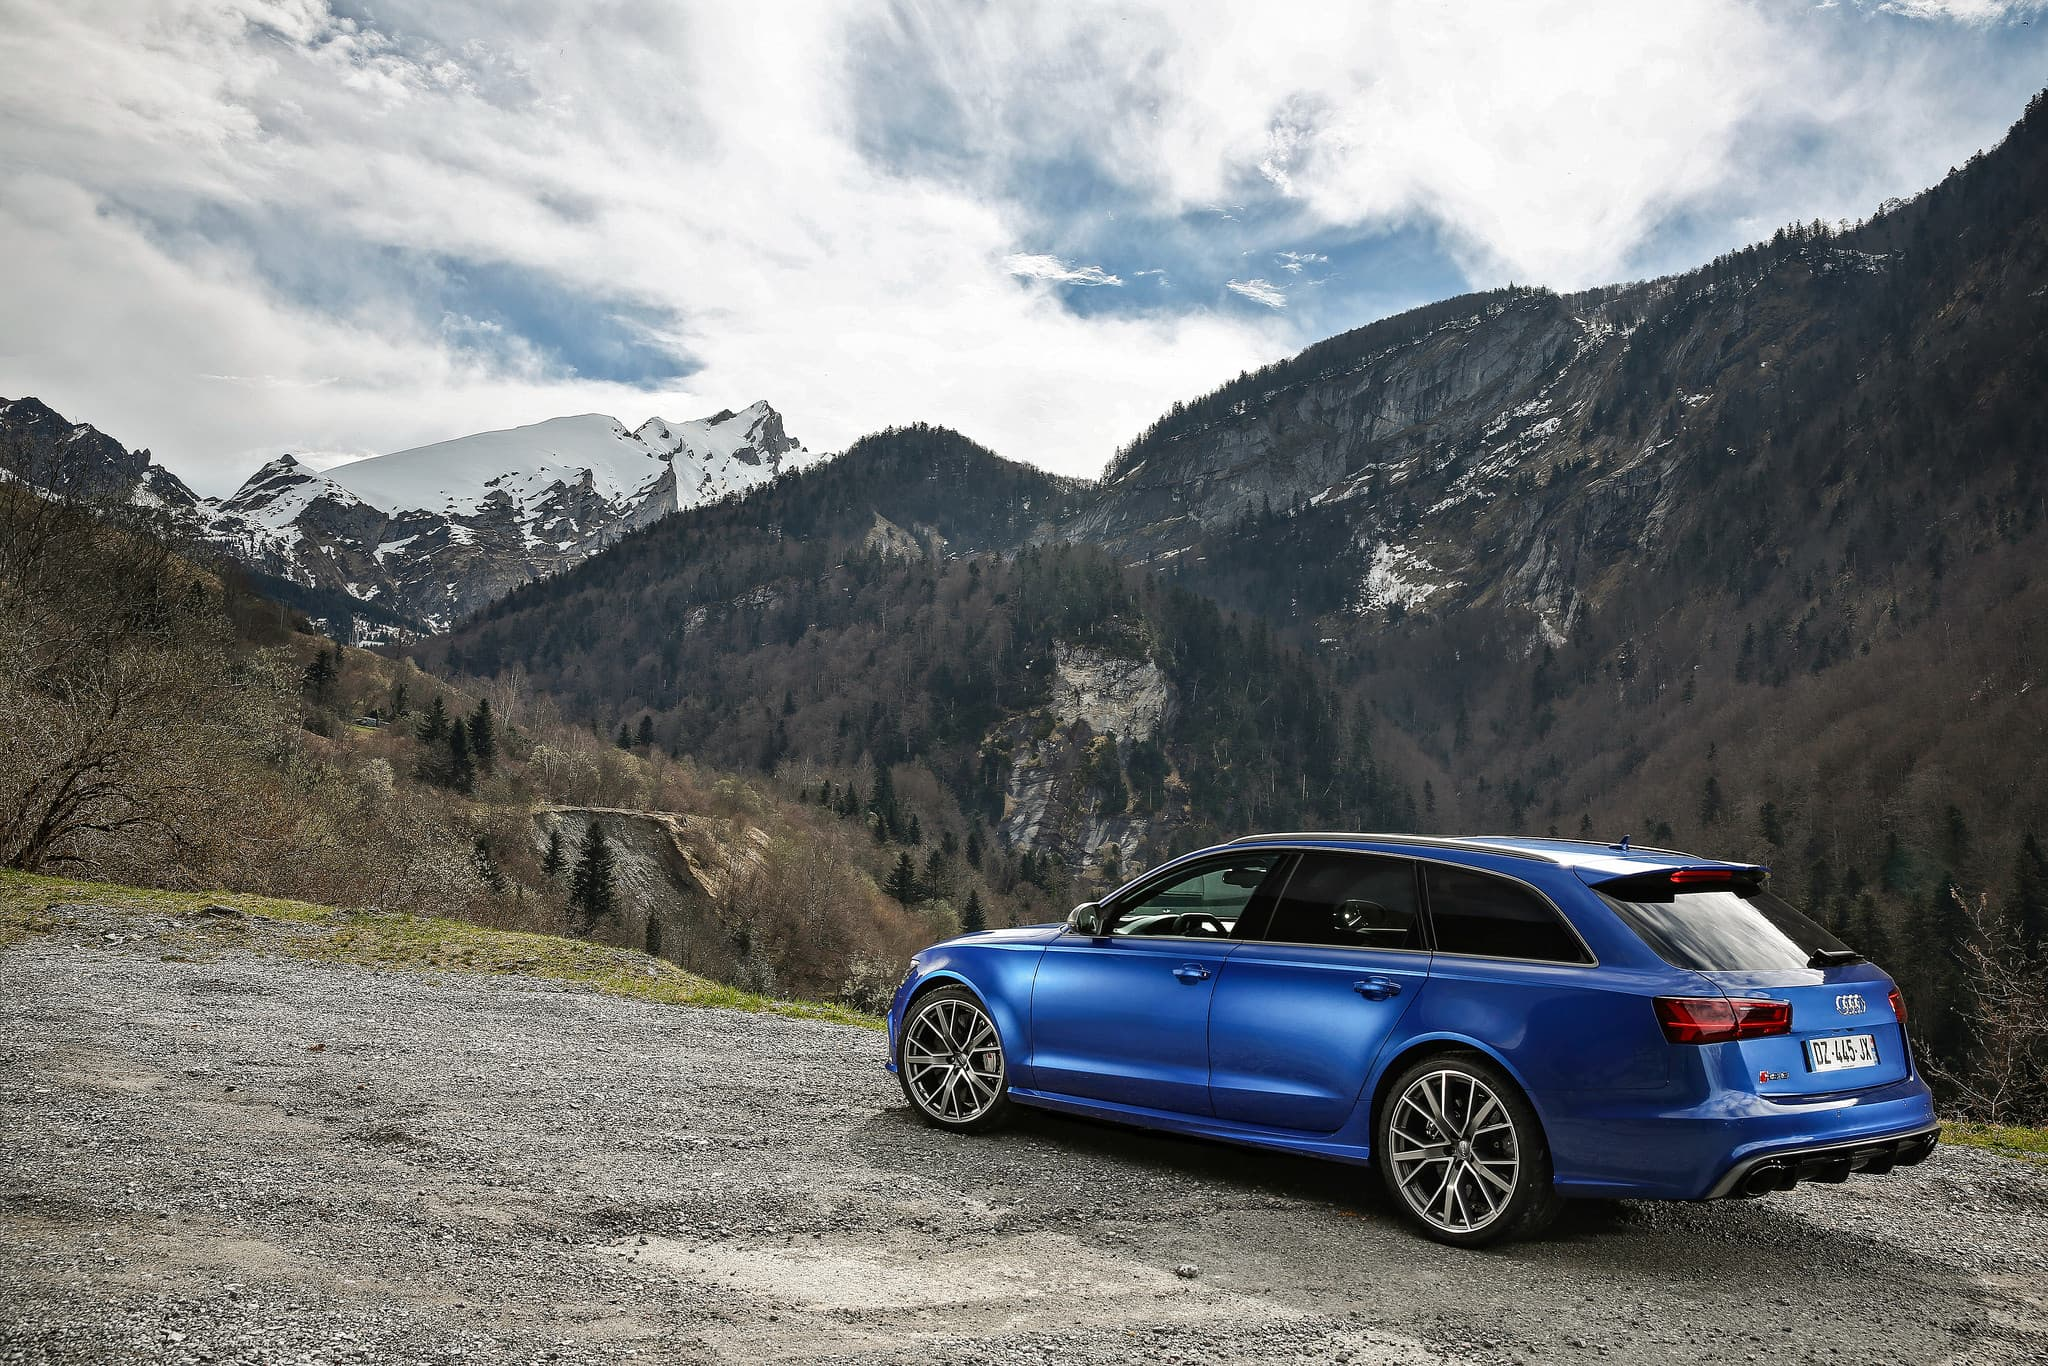 Audi RS 6 Avant Performance in high resolution